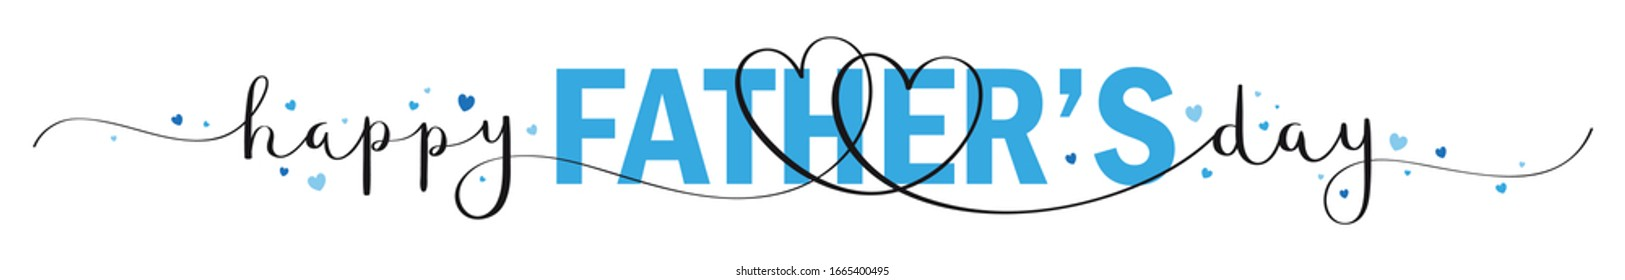 HAPPY FATHER'S DAY vector mixed typography banner with brush calligraphy and blue hearts